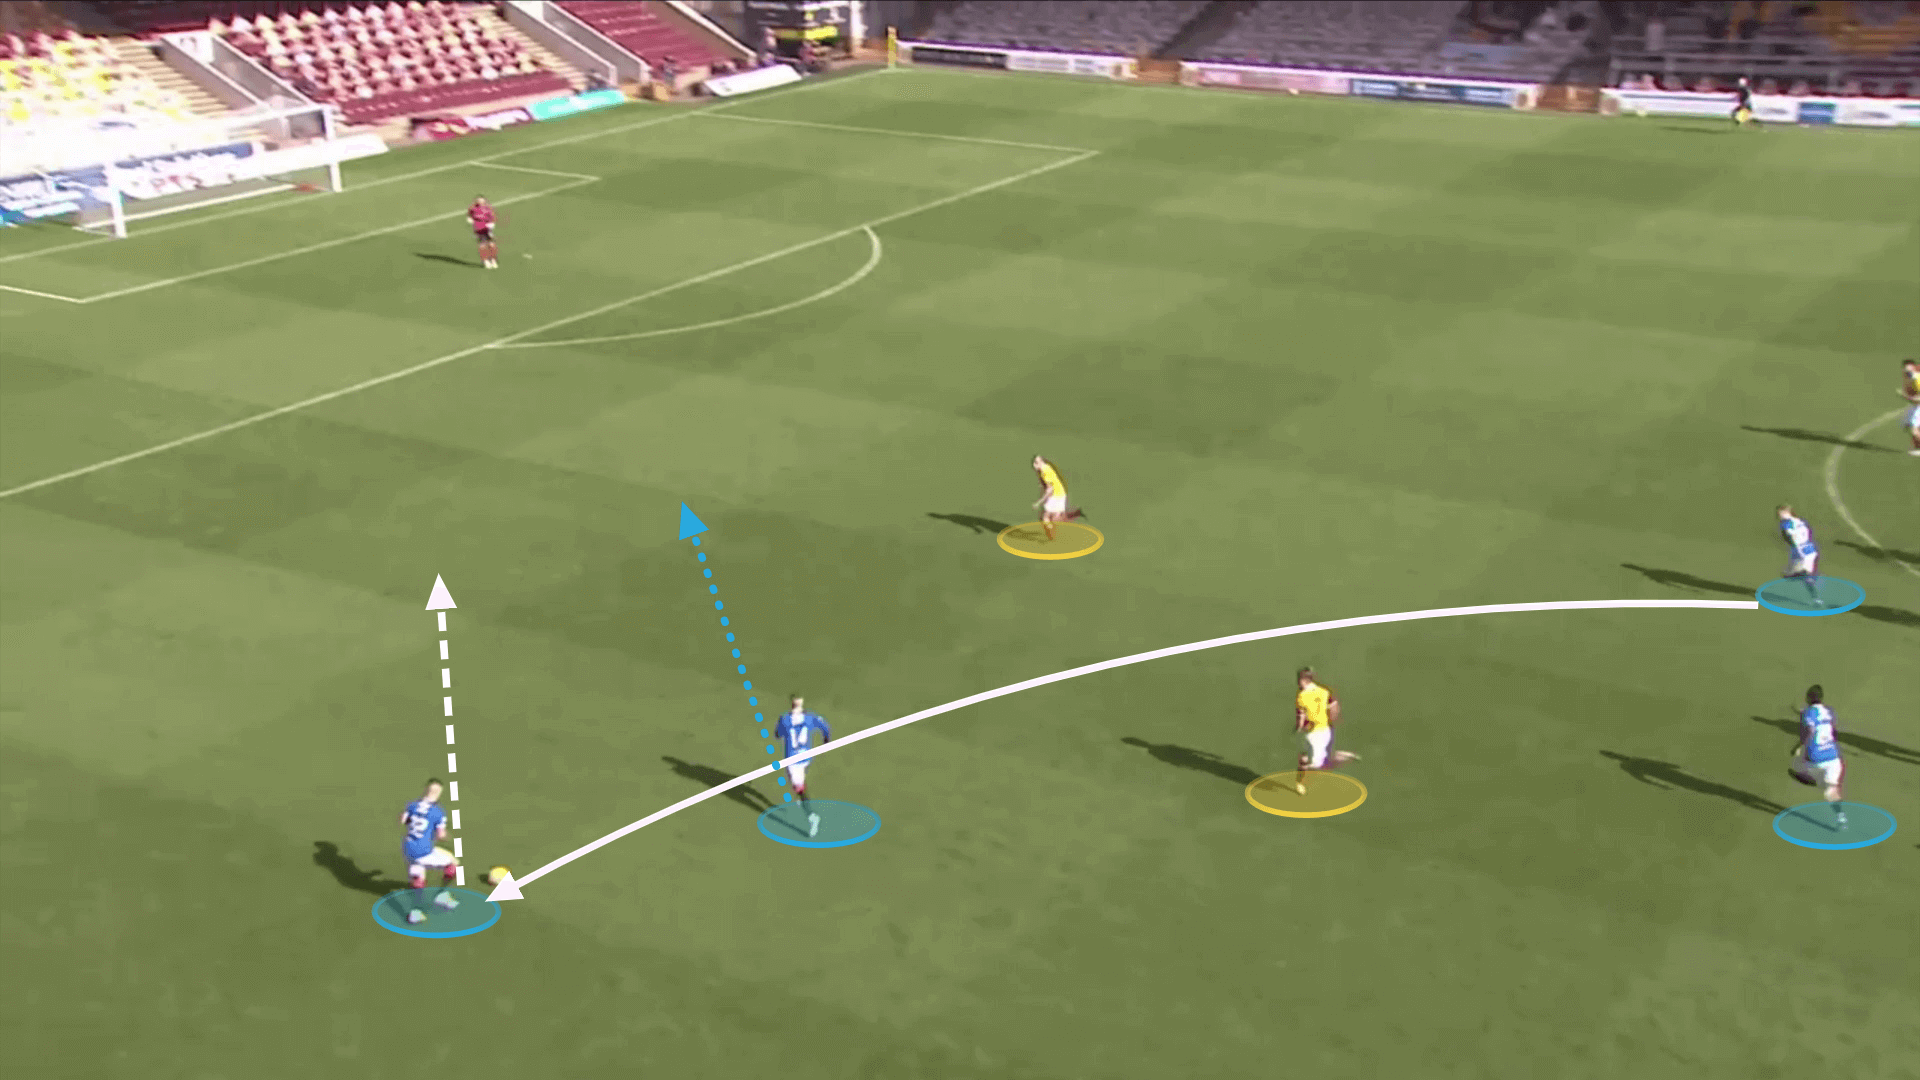 Scottish Premiership 2020/21: Motherwell v Rangers - tactical analysis - tactics